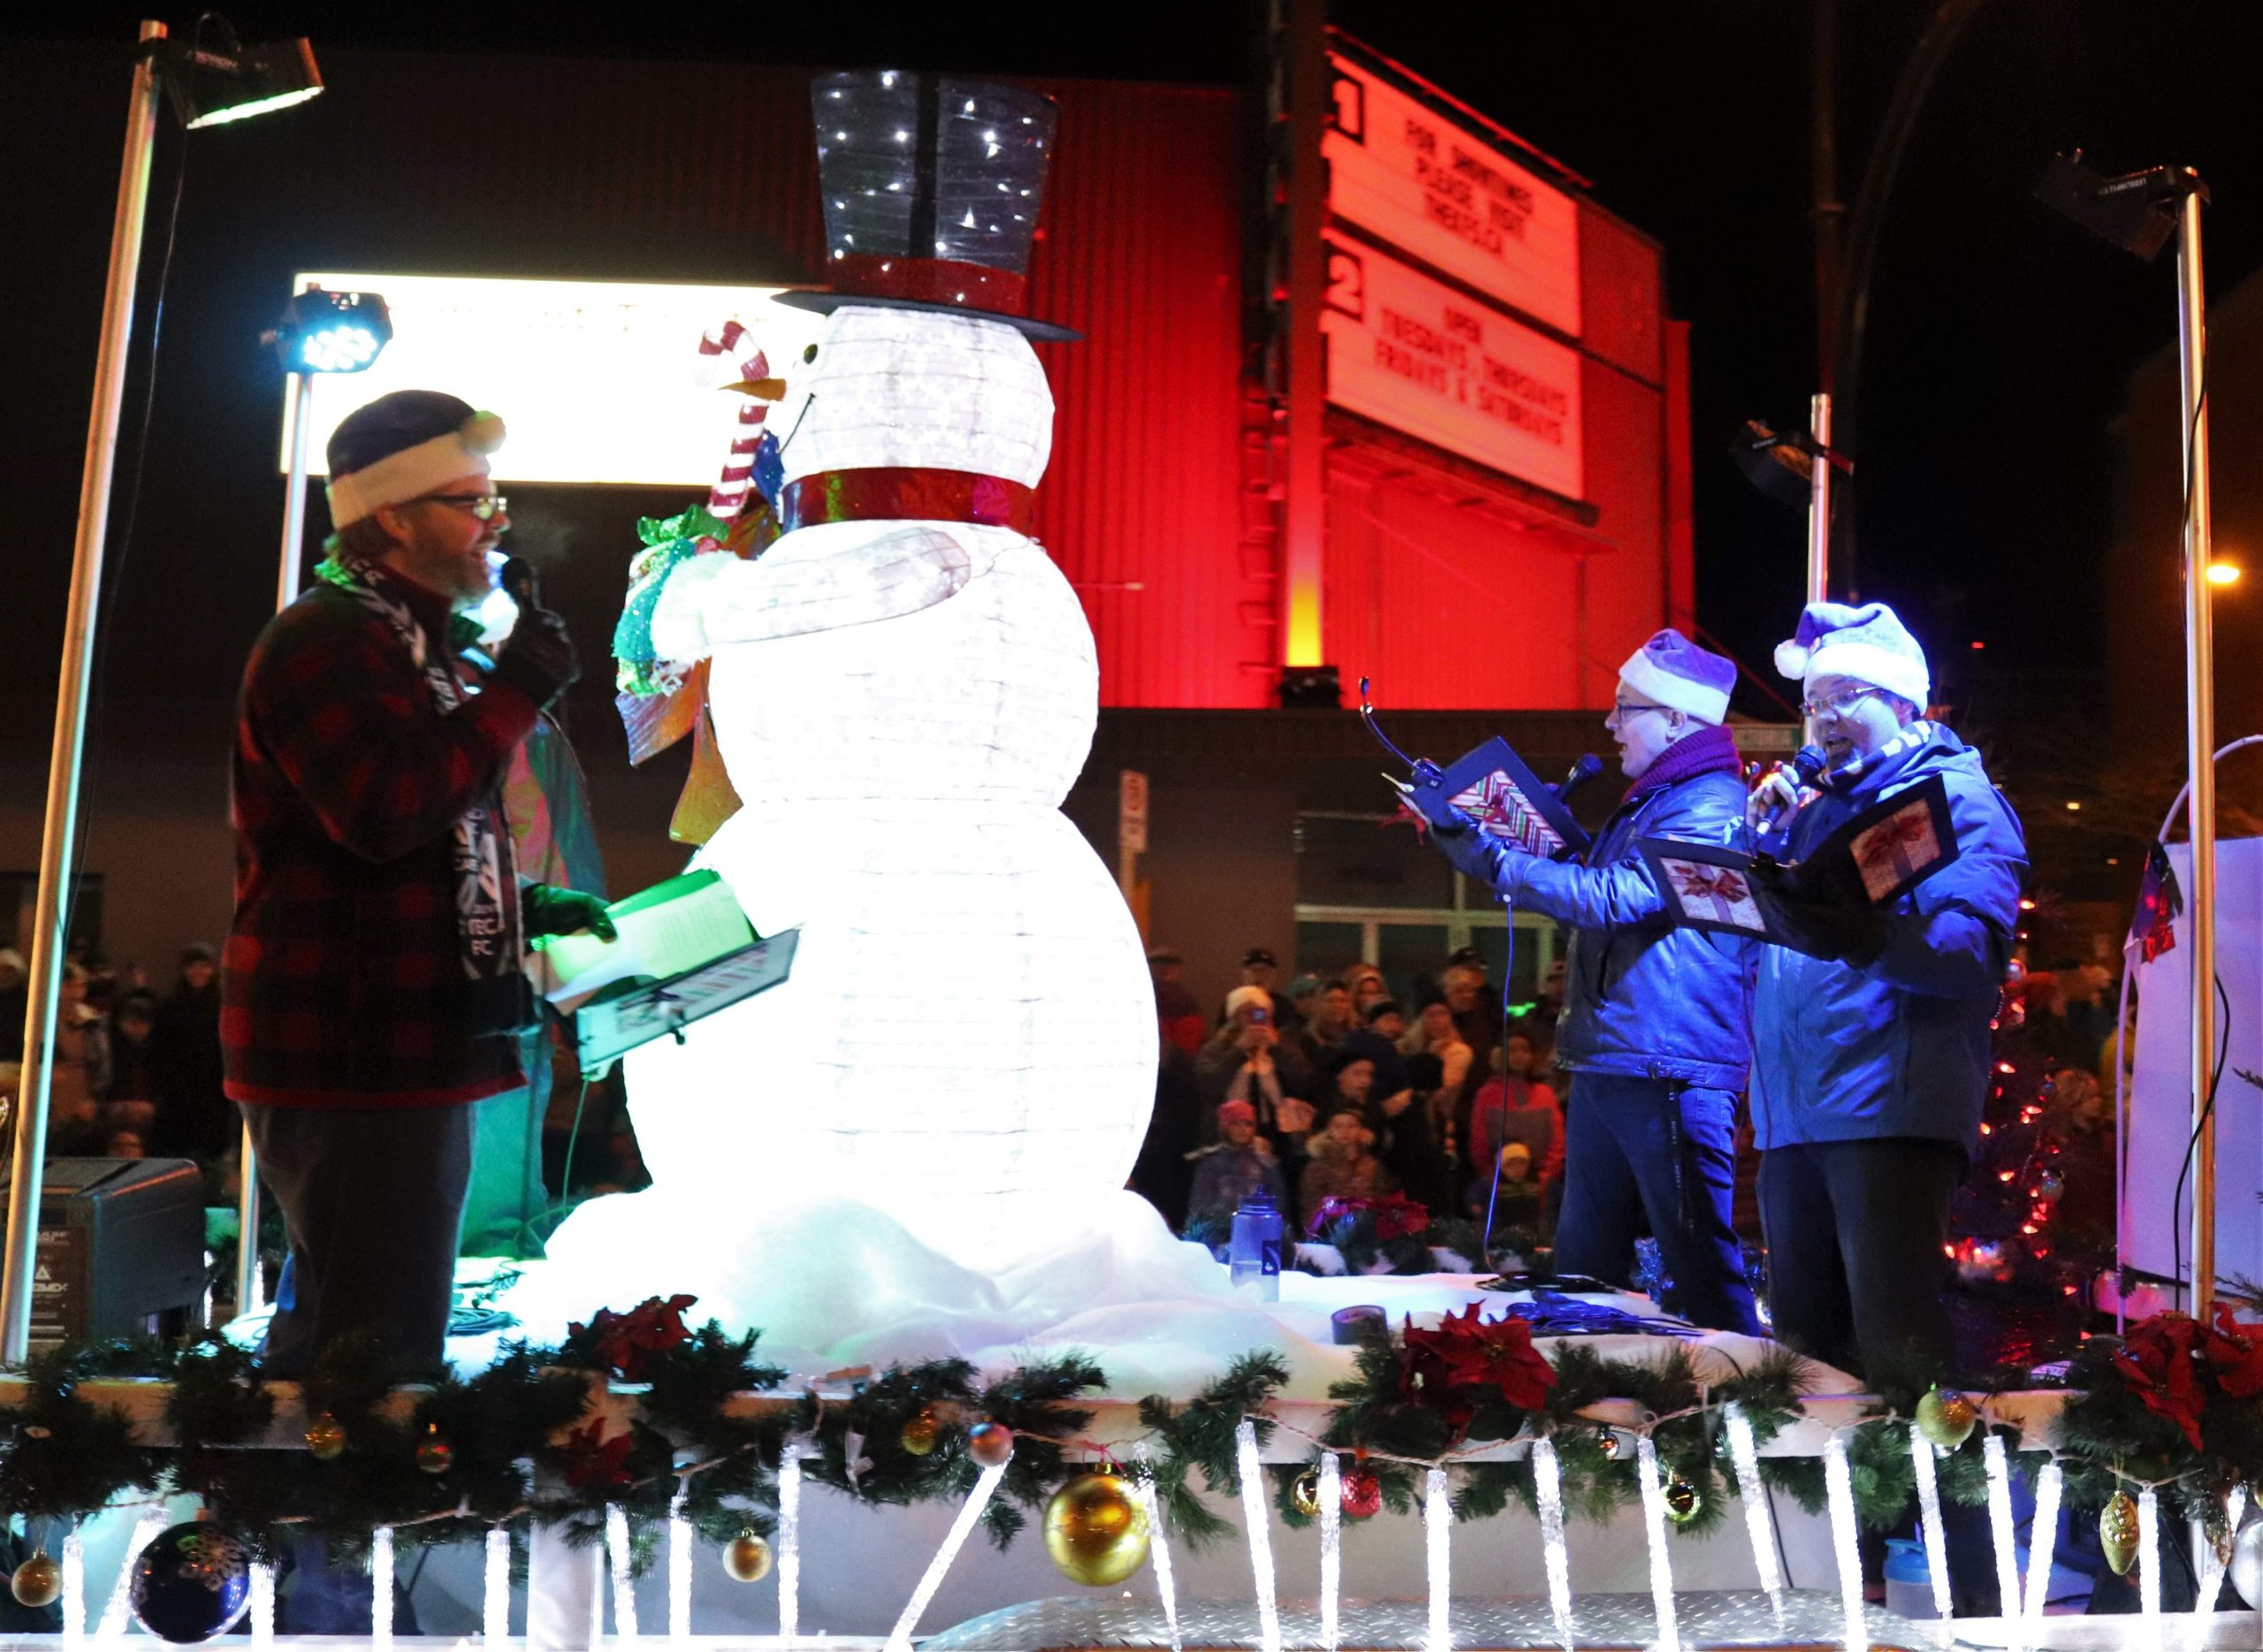 slow no tempo singing from a float in the santa claus parade (photo credit: Kamloops Matters)